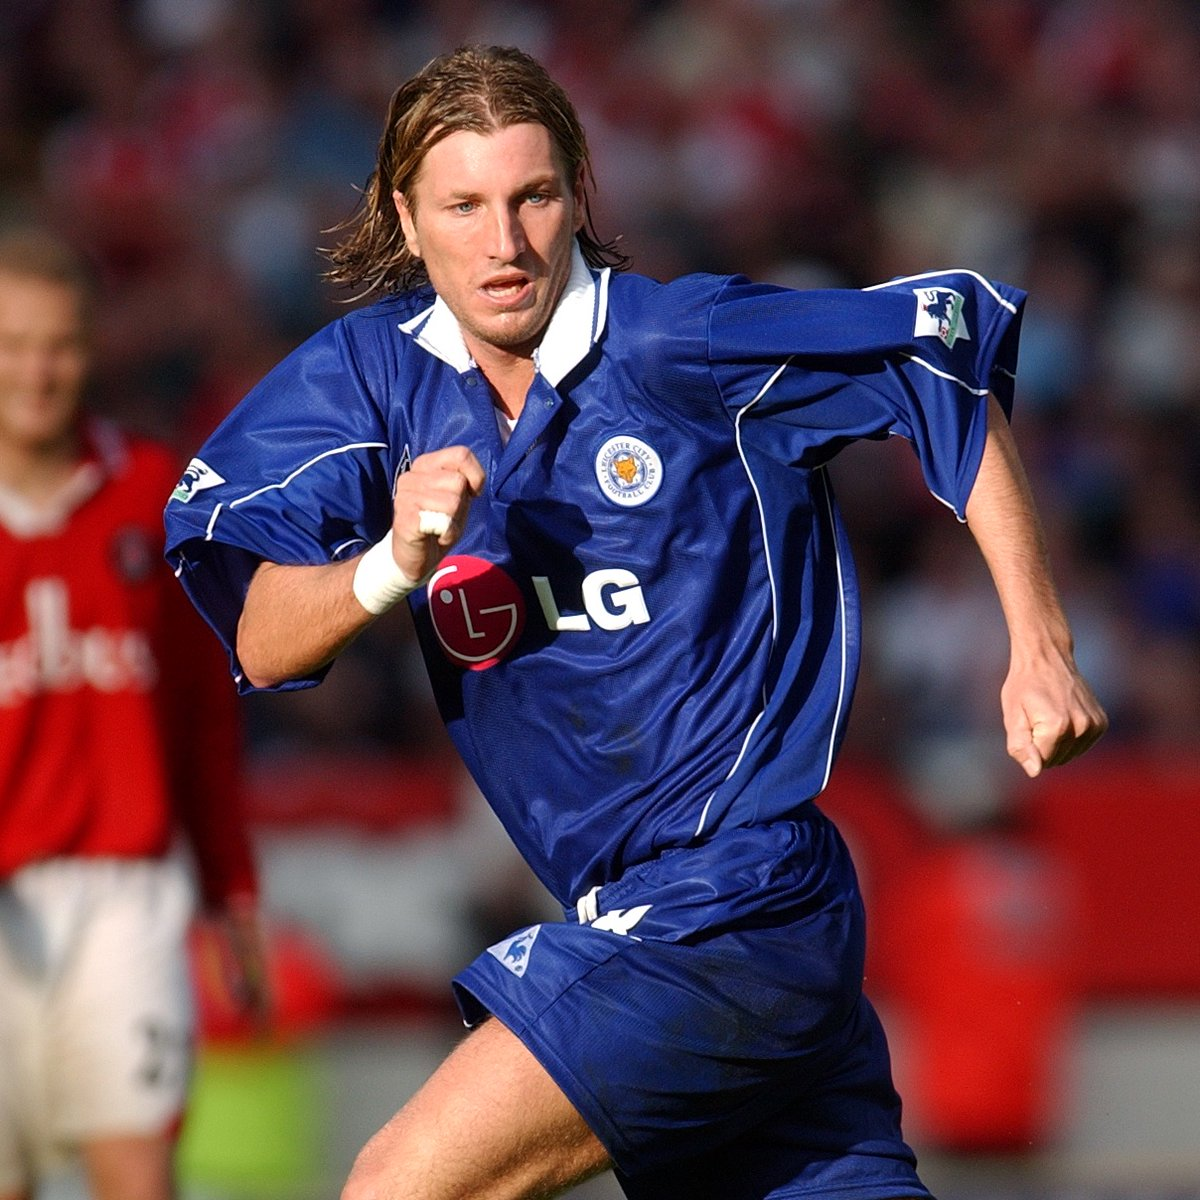 We're also wishing @RobbieSavage8 a very happy birthday today! 🎉